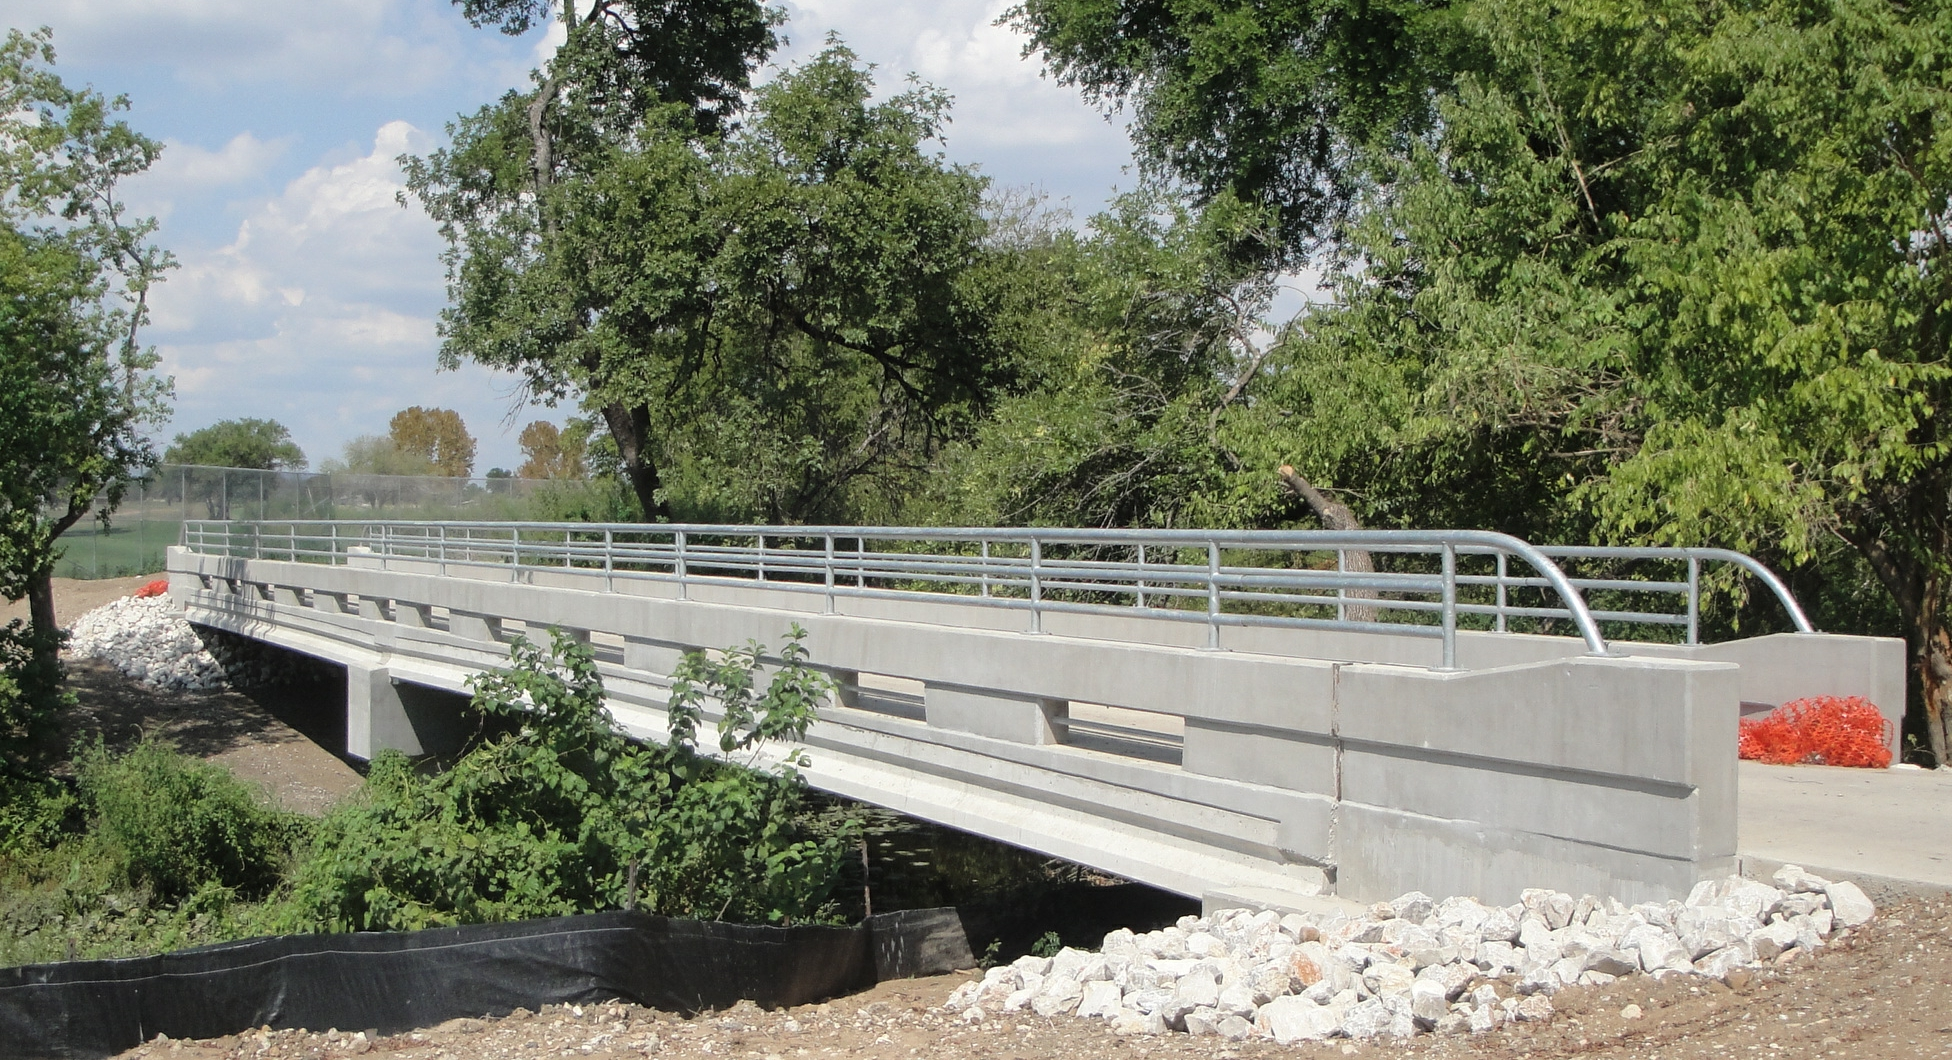 Salado Creek Hike & Bike Bridge, San Antonio, TX